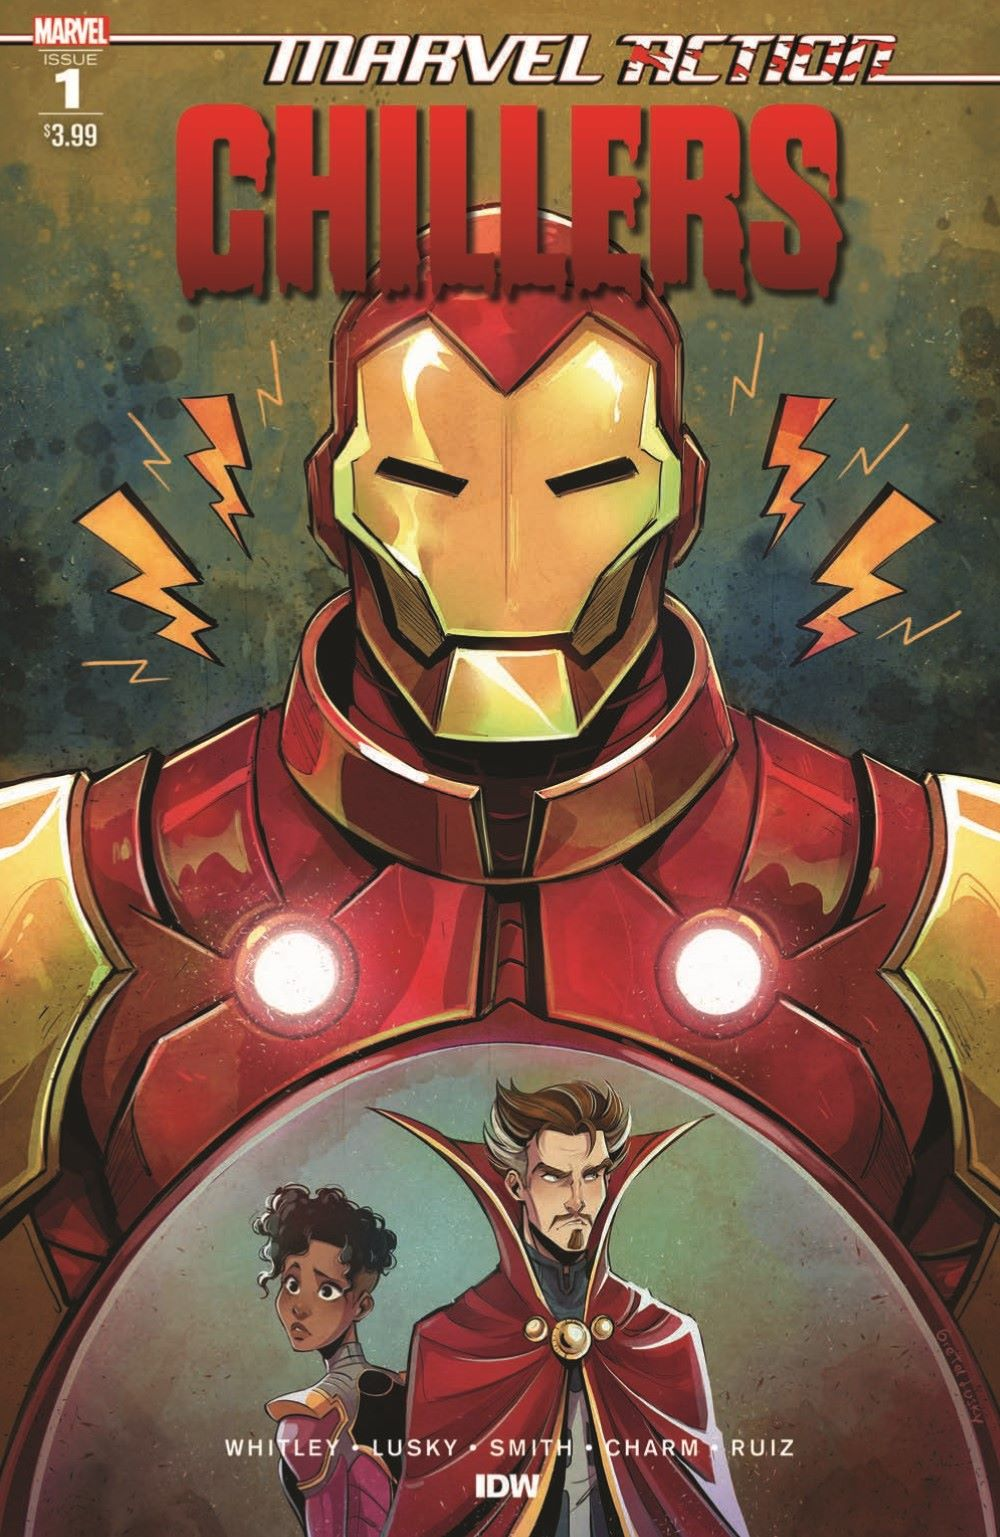 Marvel_Chillers_01_pr-1 ComicList Previews: MARVEL ACTION CHILLERS #1